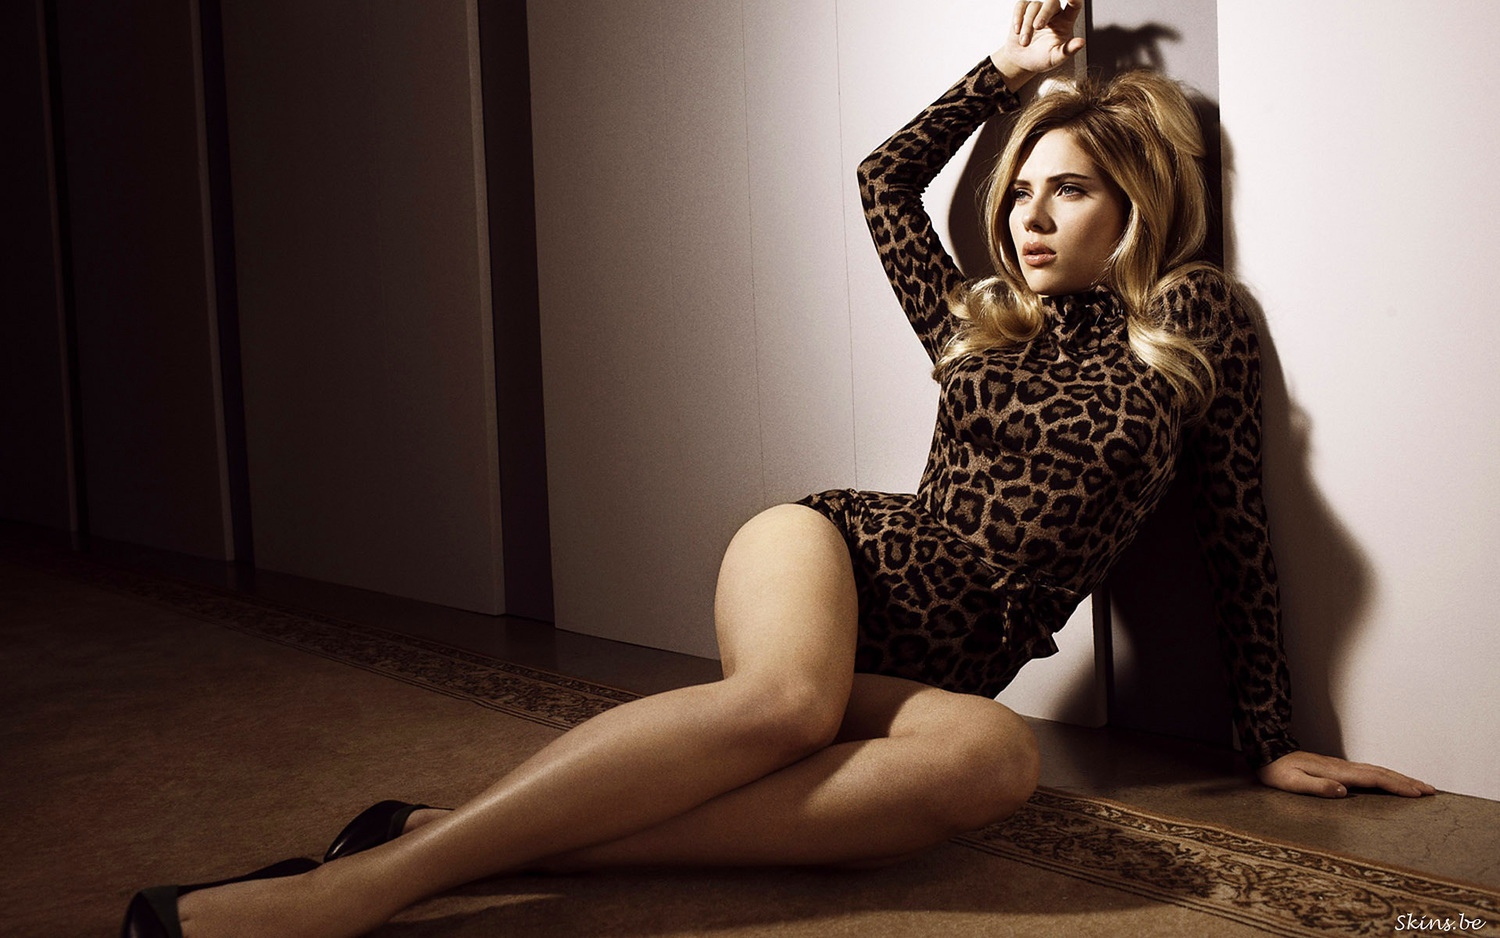 HOTSKIN-Scarlett-Johansson-scarlett-johansson-sexy-photo-session-hd-wallpapers